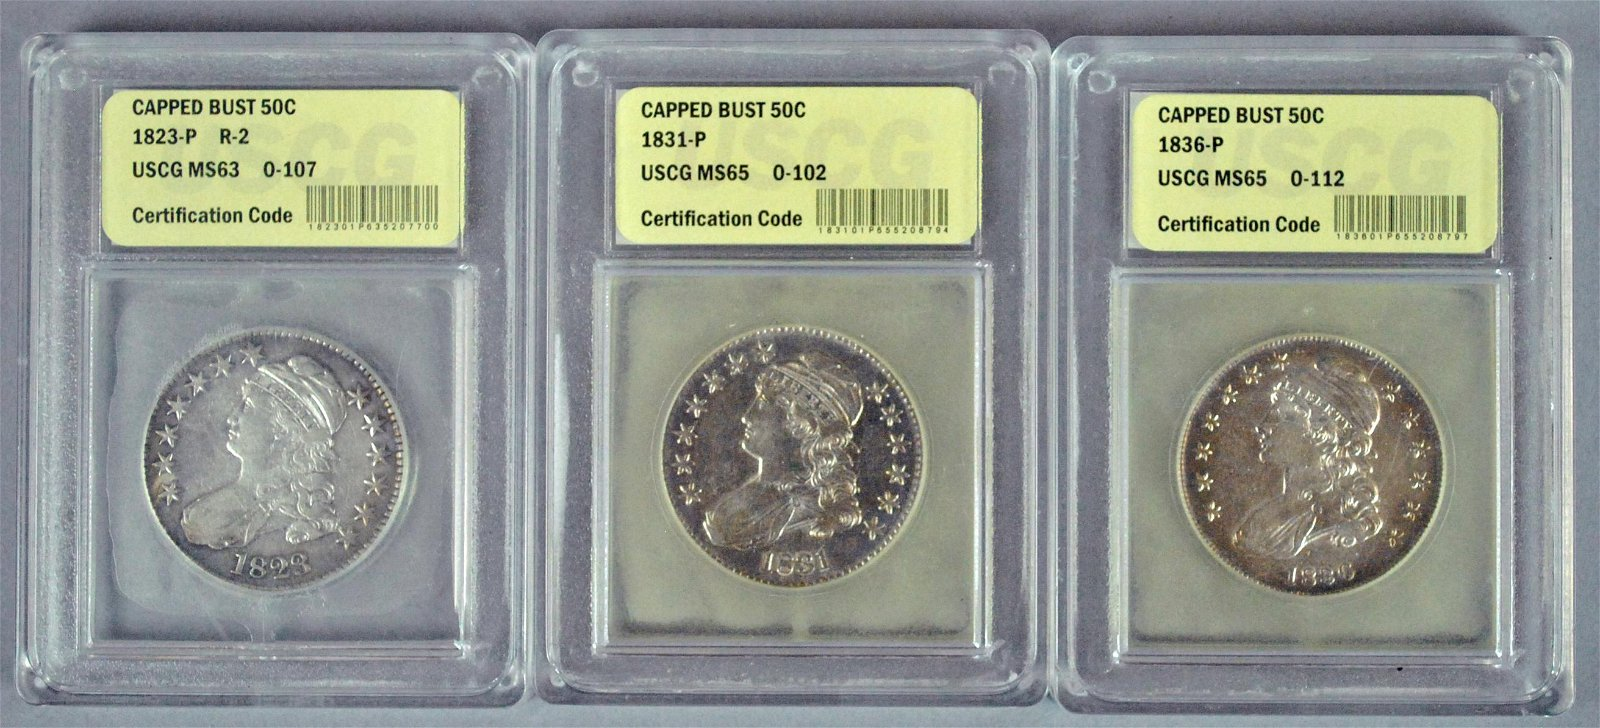 (3) GRADED CAPPED BUST US SILVER HALF DOLLAR COINS